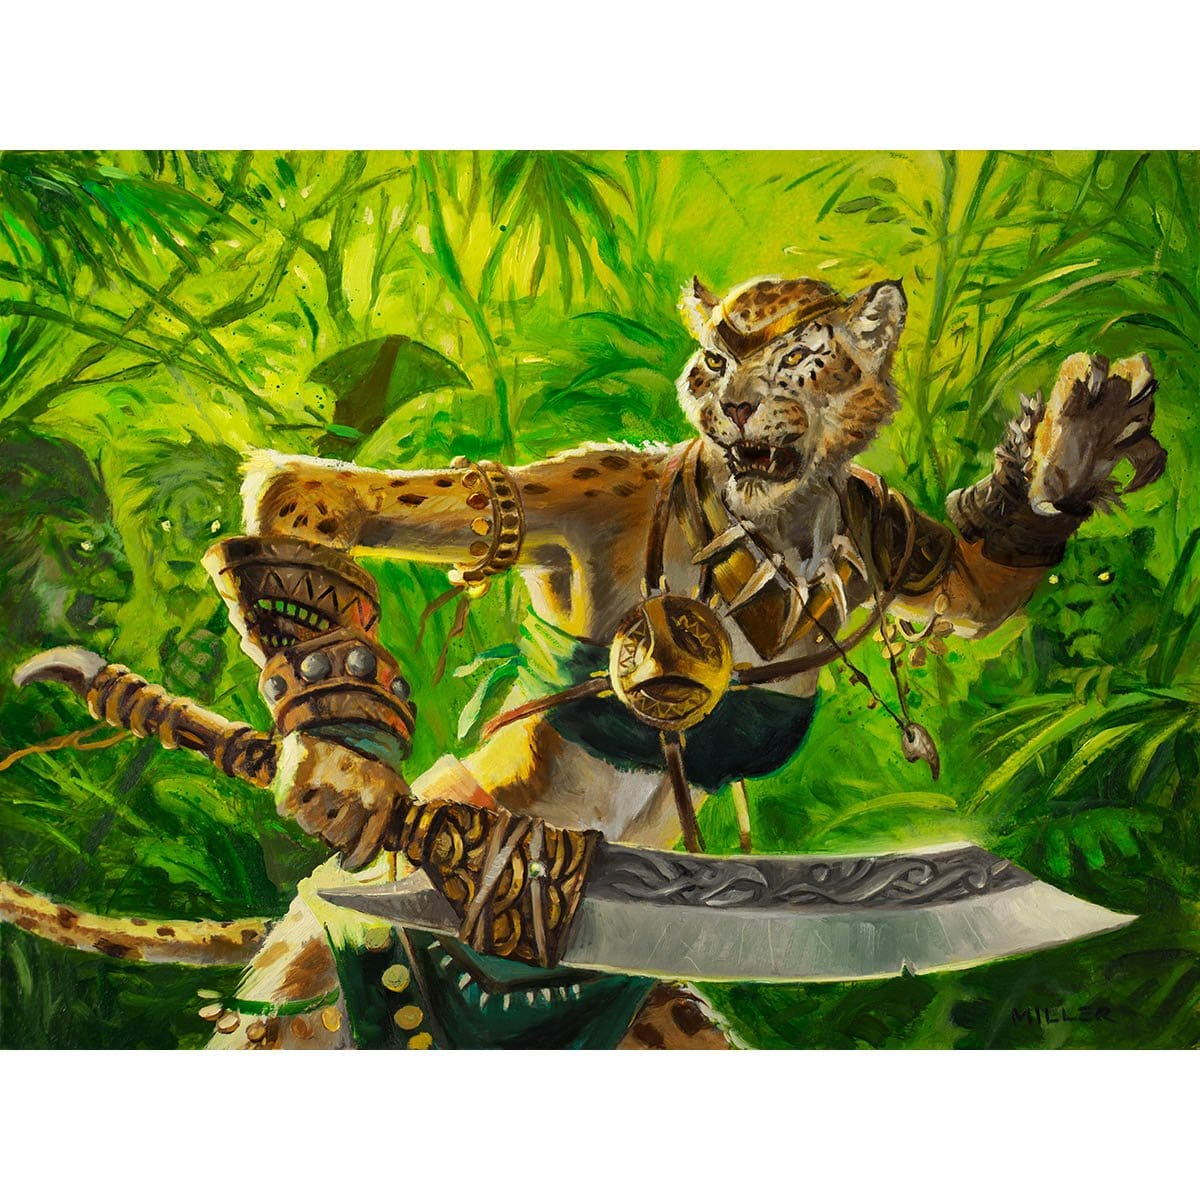 Leonin Vanguard Print - Print - Original Magic Art - Accessories for Magic the Gathering and other card games